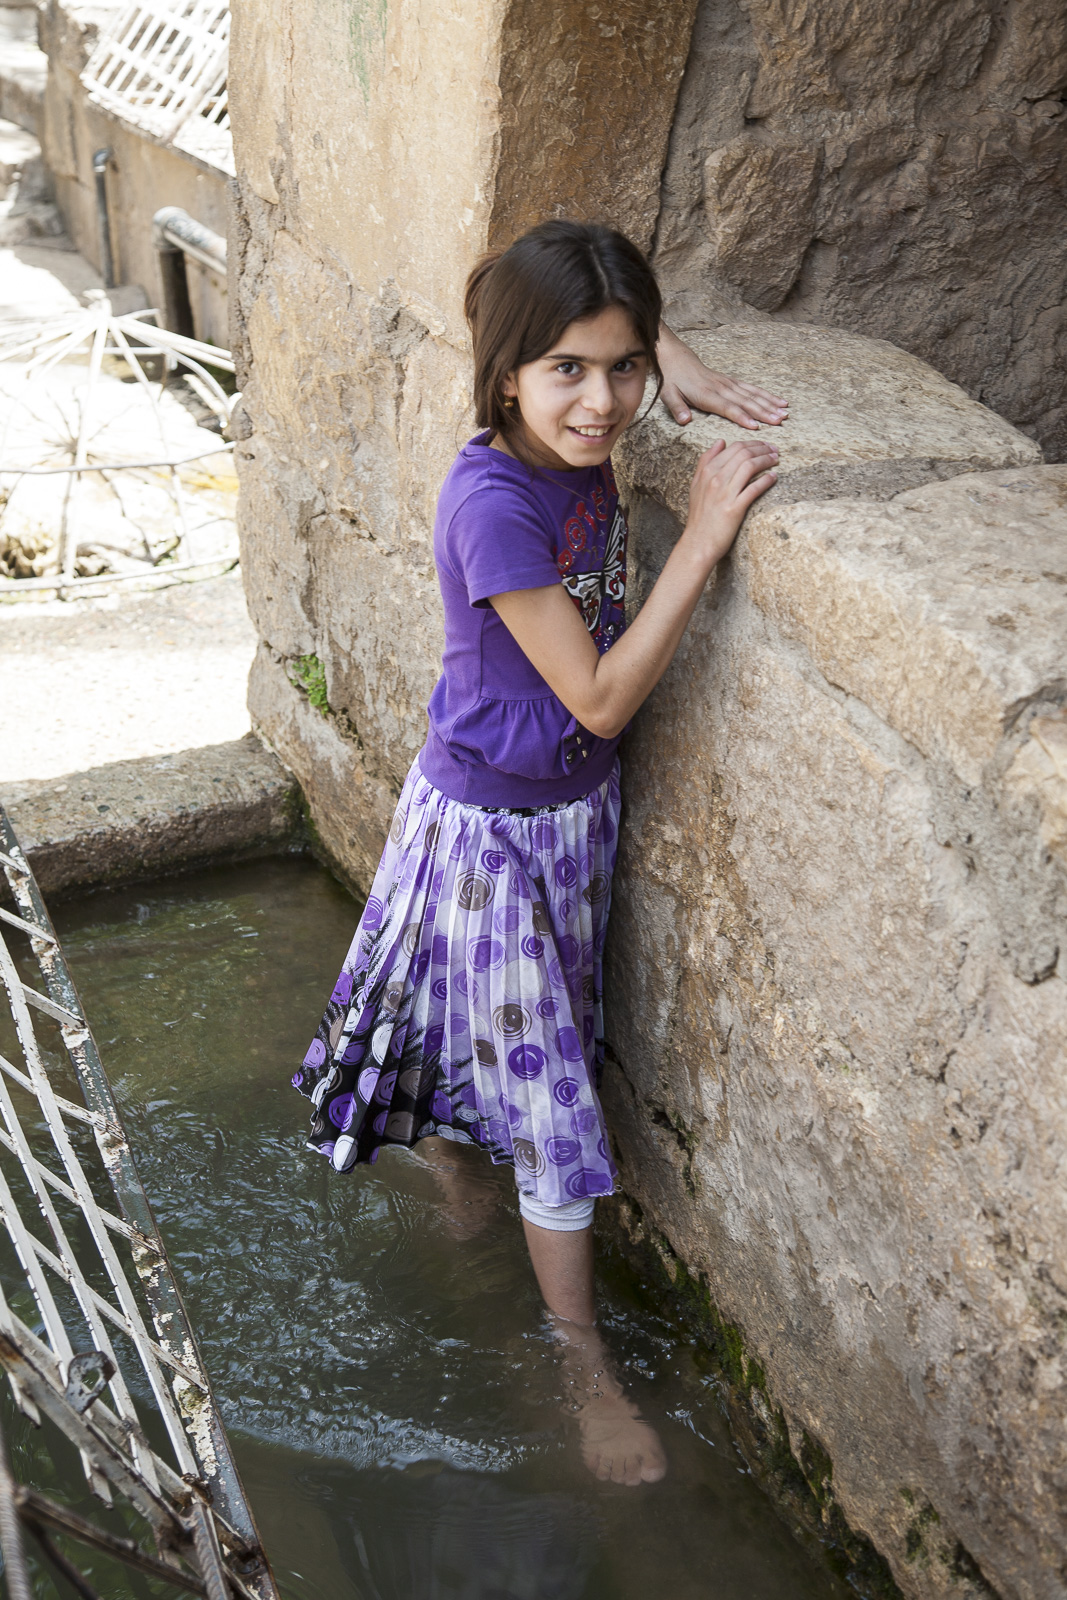 A carefree young Yazidi at the holy site of Lalish before the Genocide that brutalized so many lives.  Photo credit: Saverio Serravezza